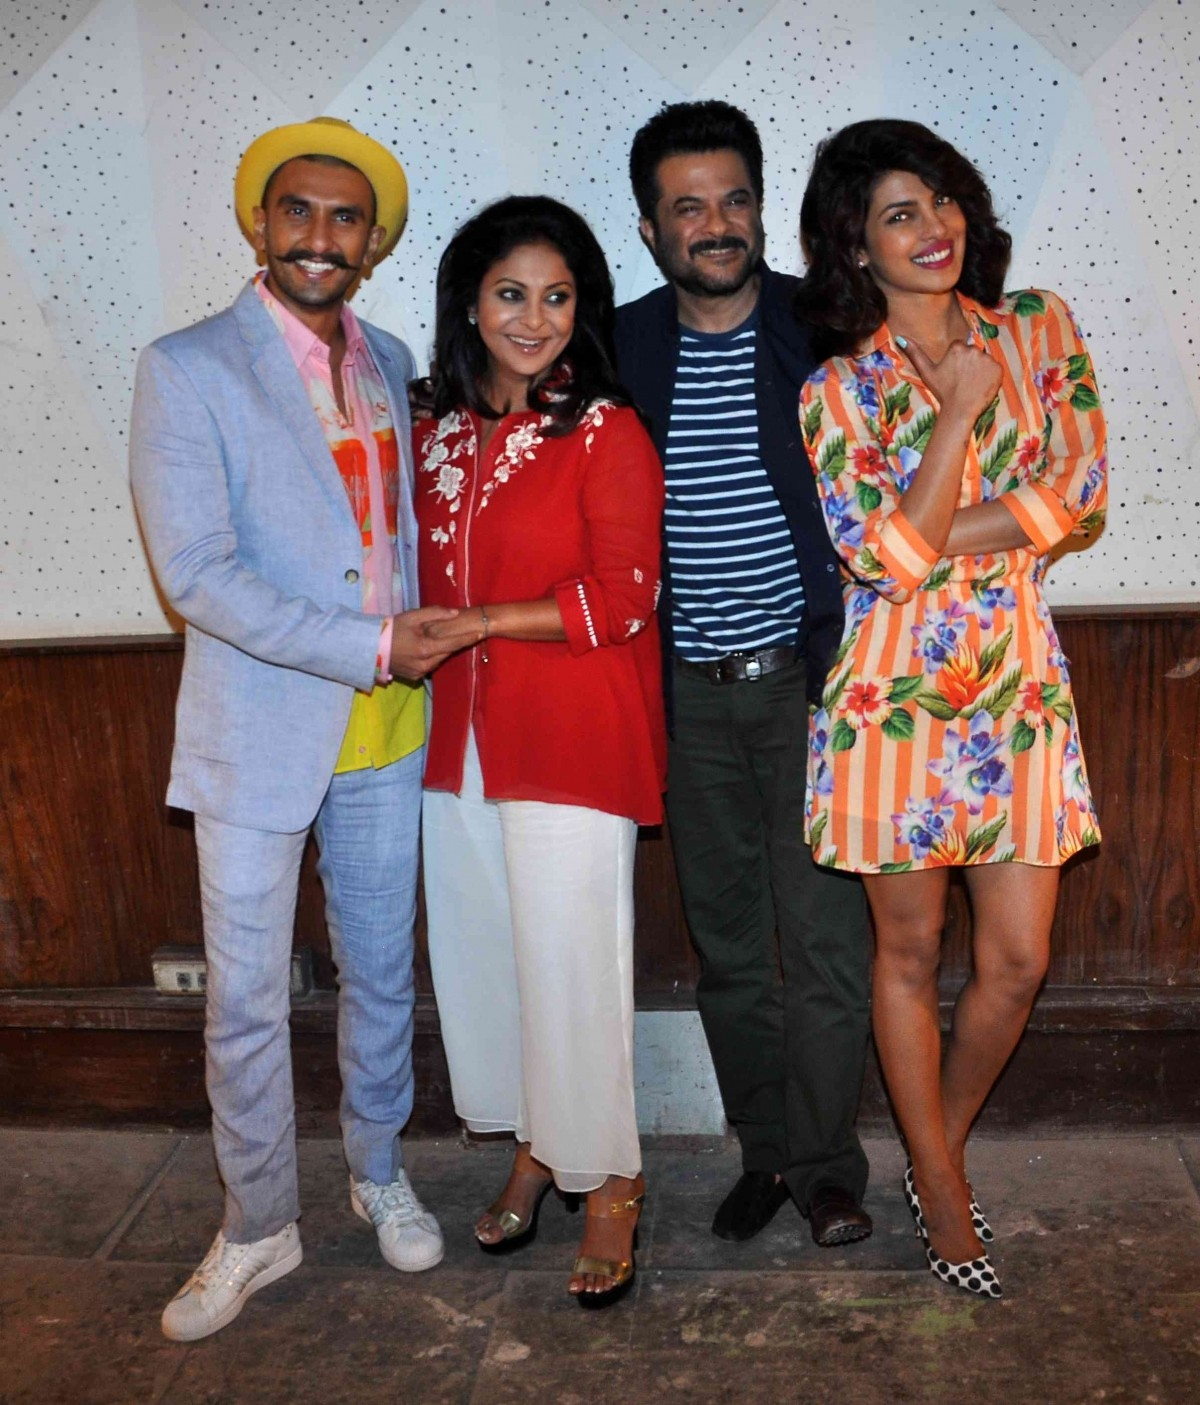 Ranveer Singh, Shefali Shah, Anil Kapoor and Priyanka Chopra during 'Dil Dhadakne Do' press meet